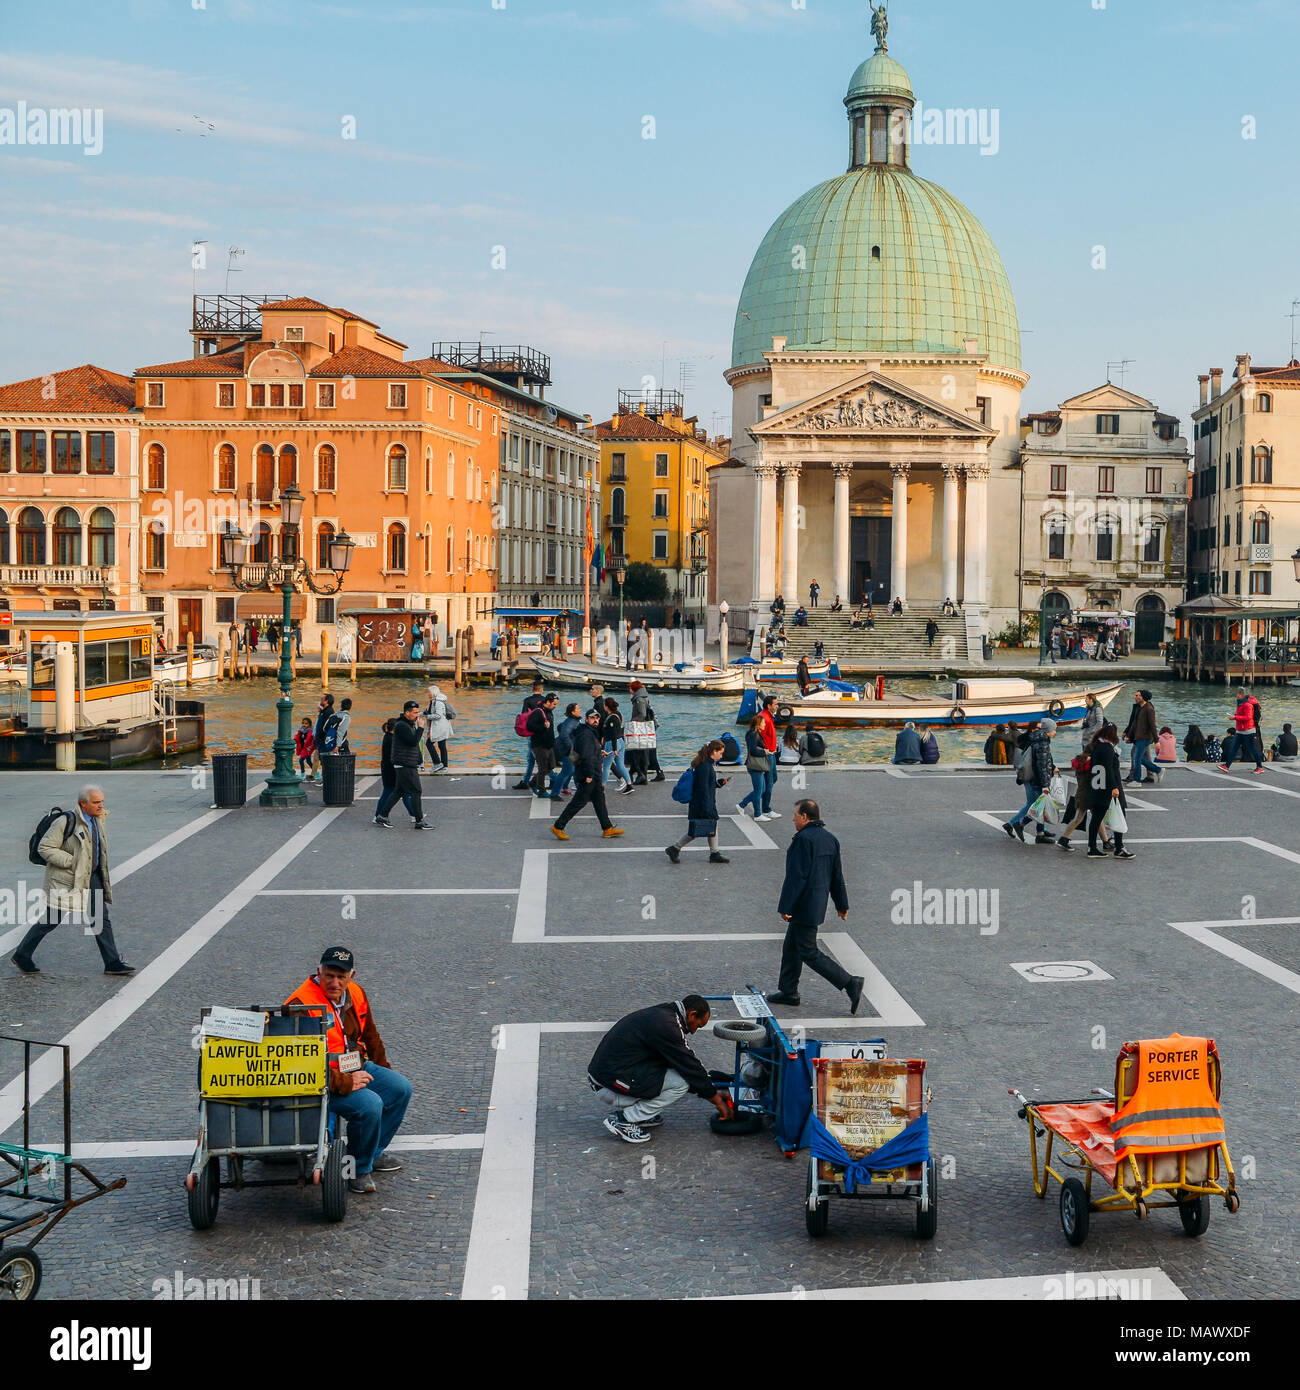 Luggage porters advertising their services in front of Venice's Santa Lucia railway station - Stock Image